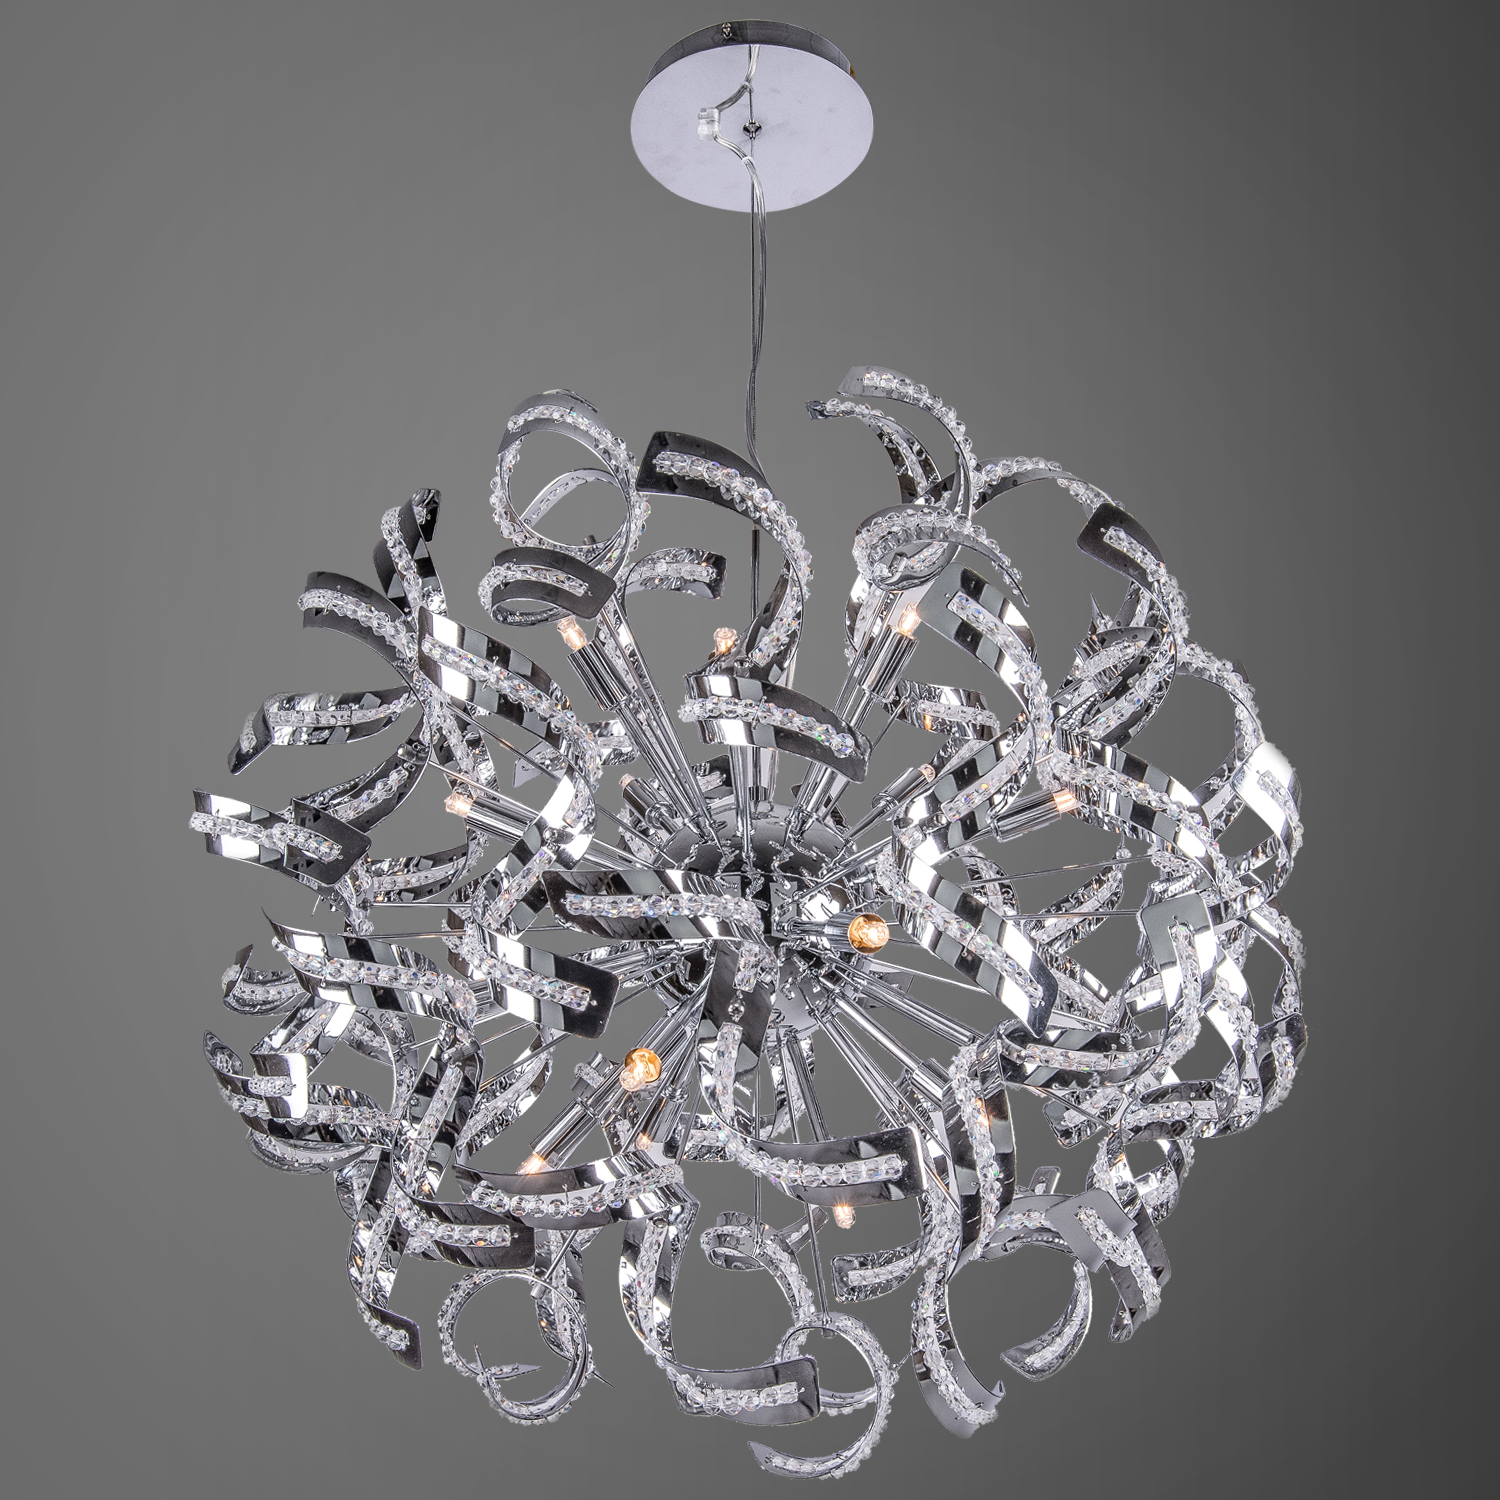 french styles resembling funky crystal table new chandeliers real modern depot pride light them foyer unusual home chandelier charley victoria lighting dining homes keeping